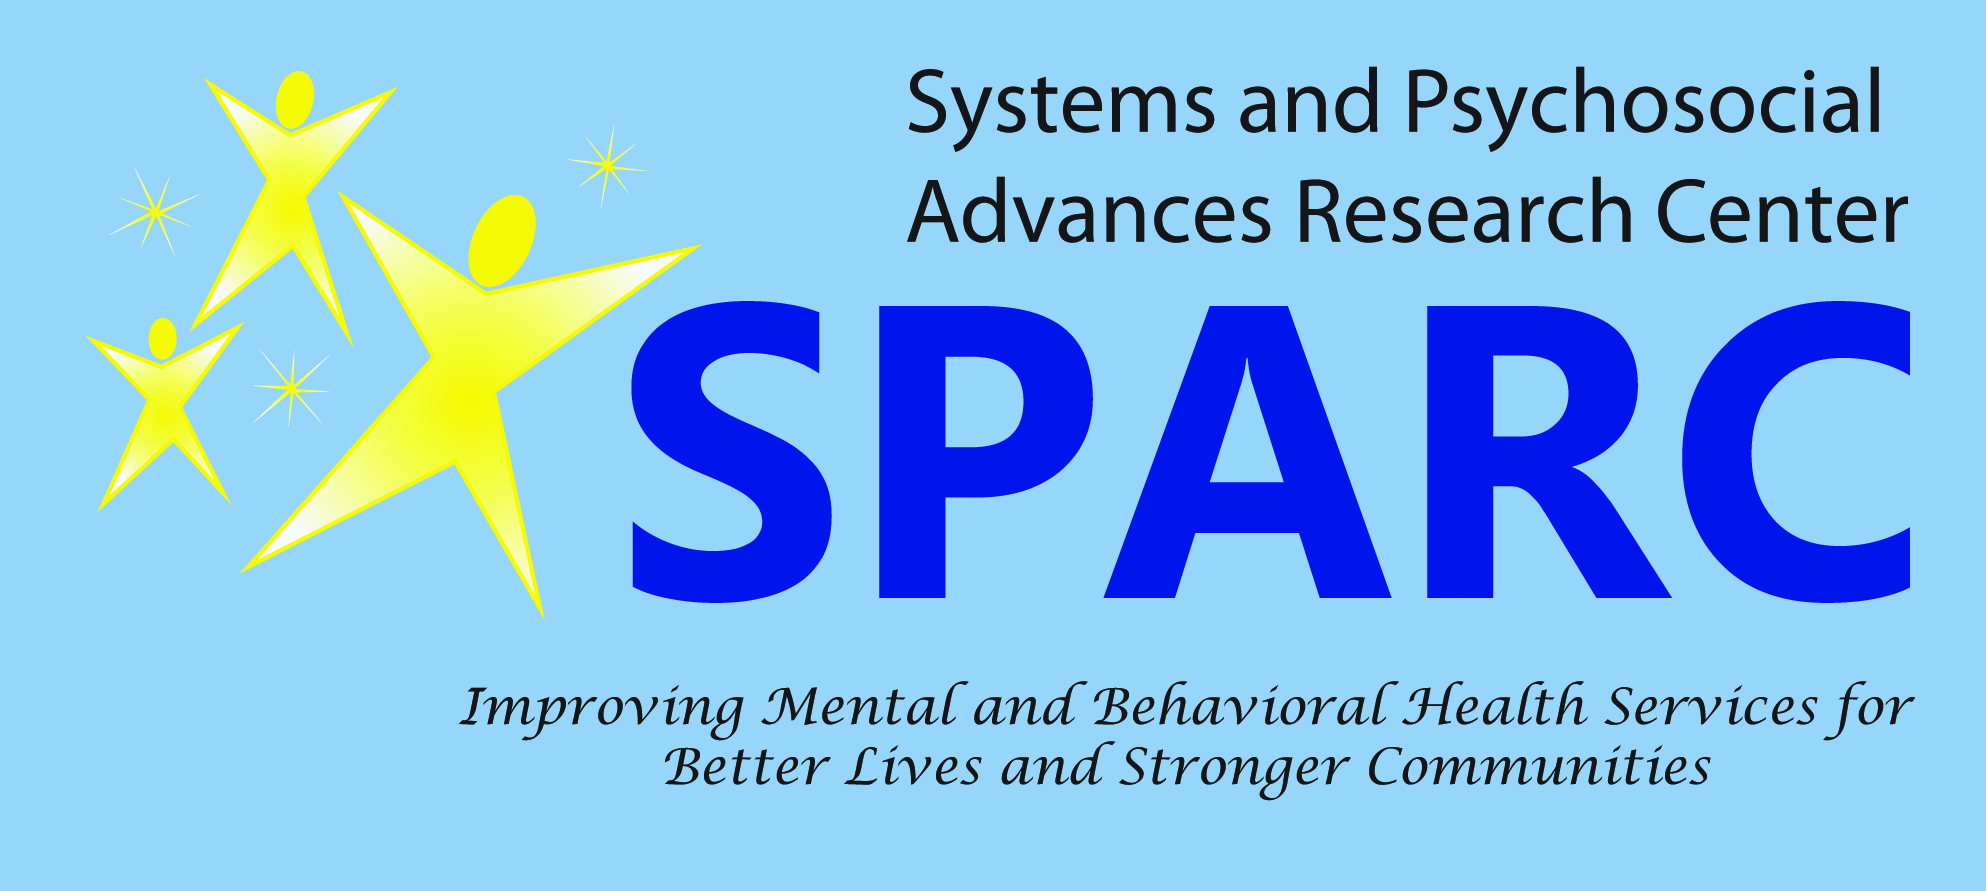 Systems and Psychosocial Advances Research Center Publications and Presentations